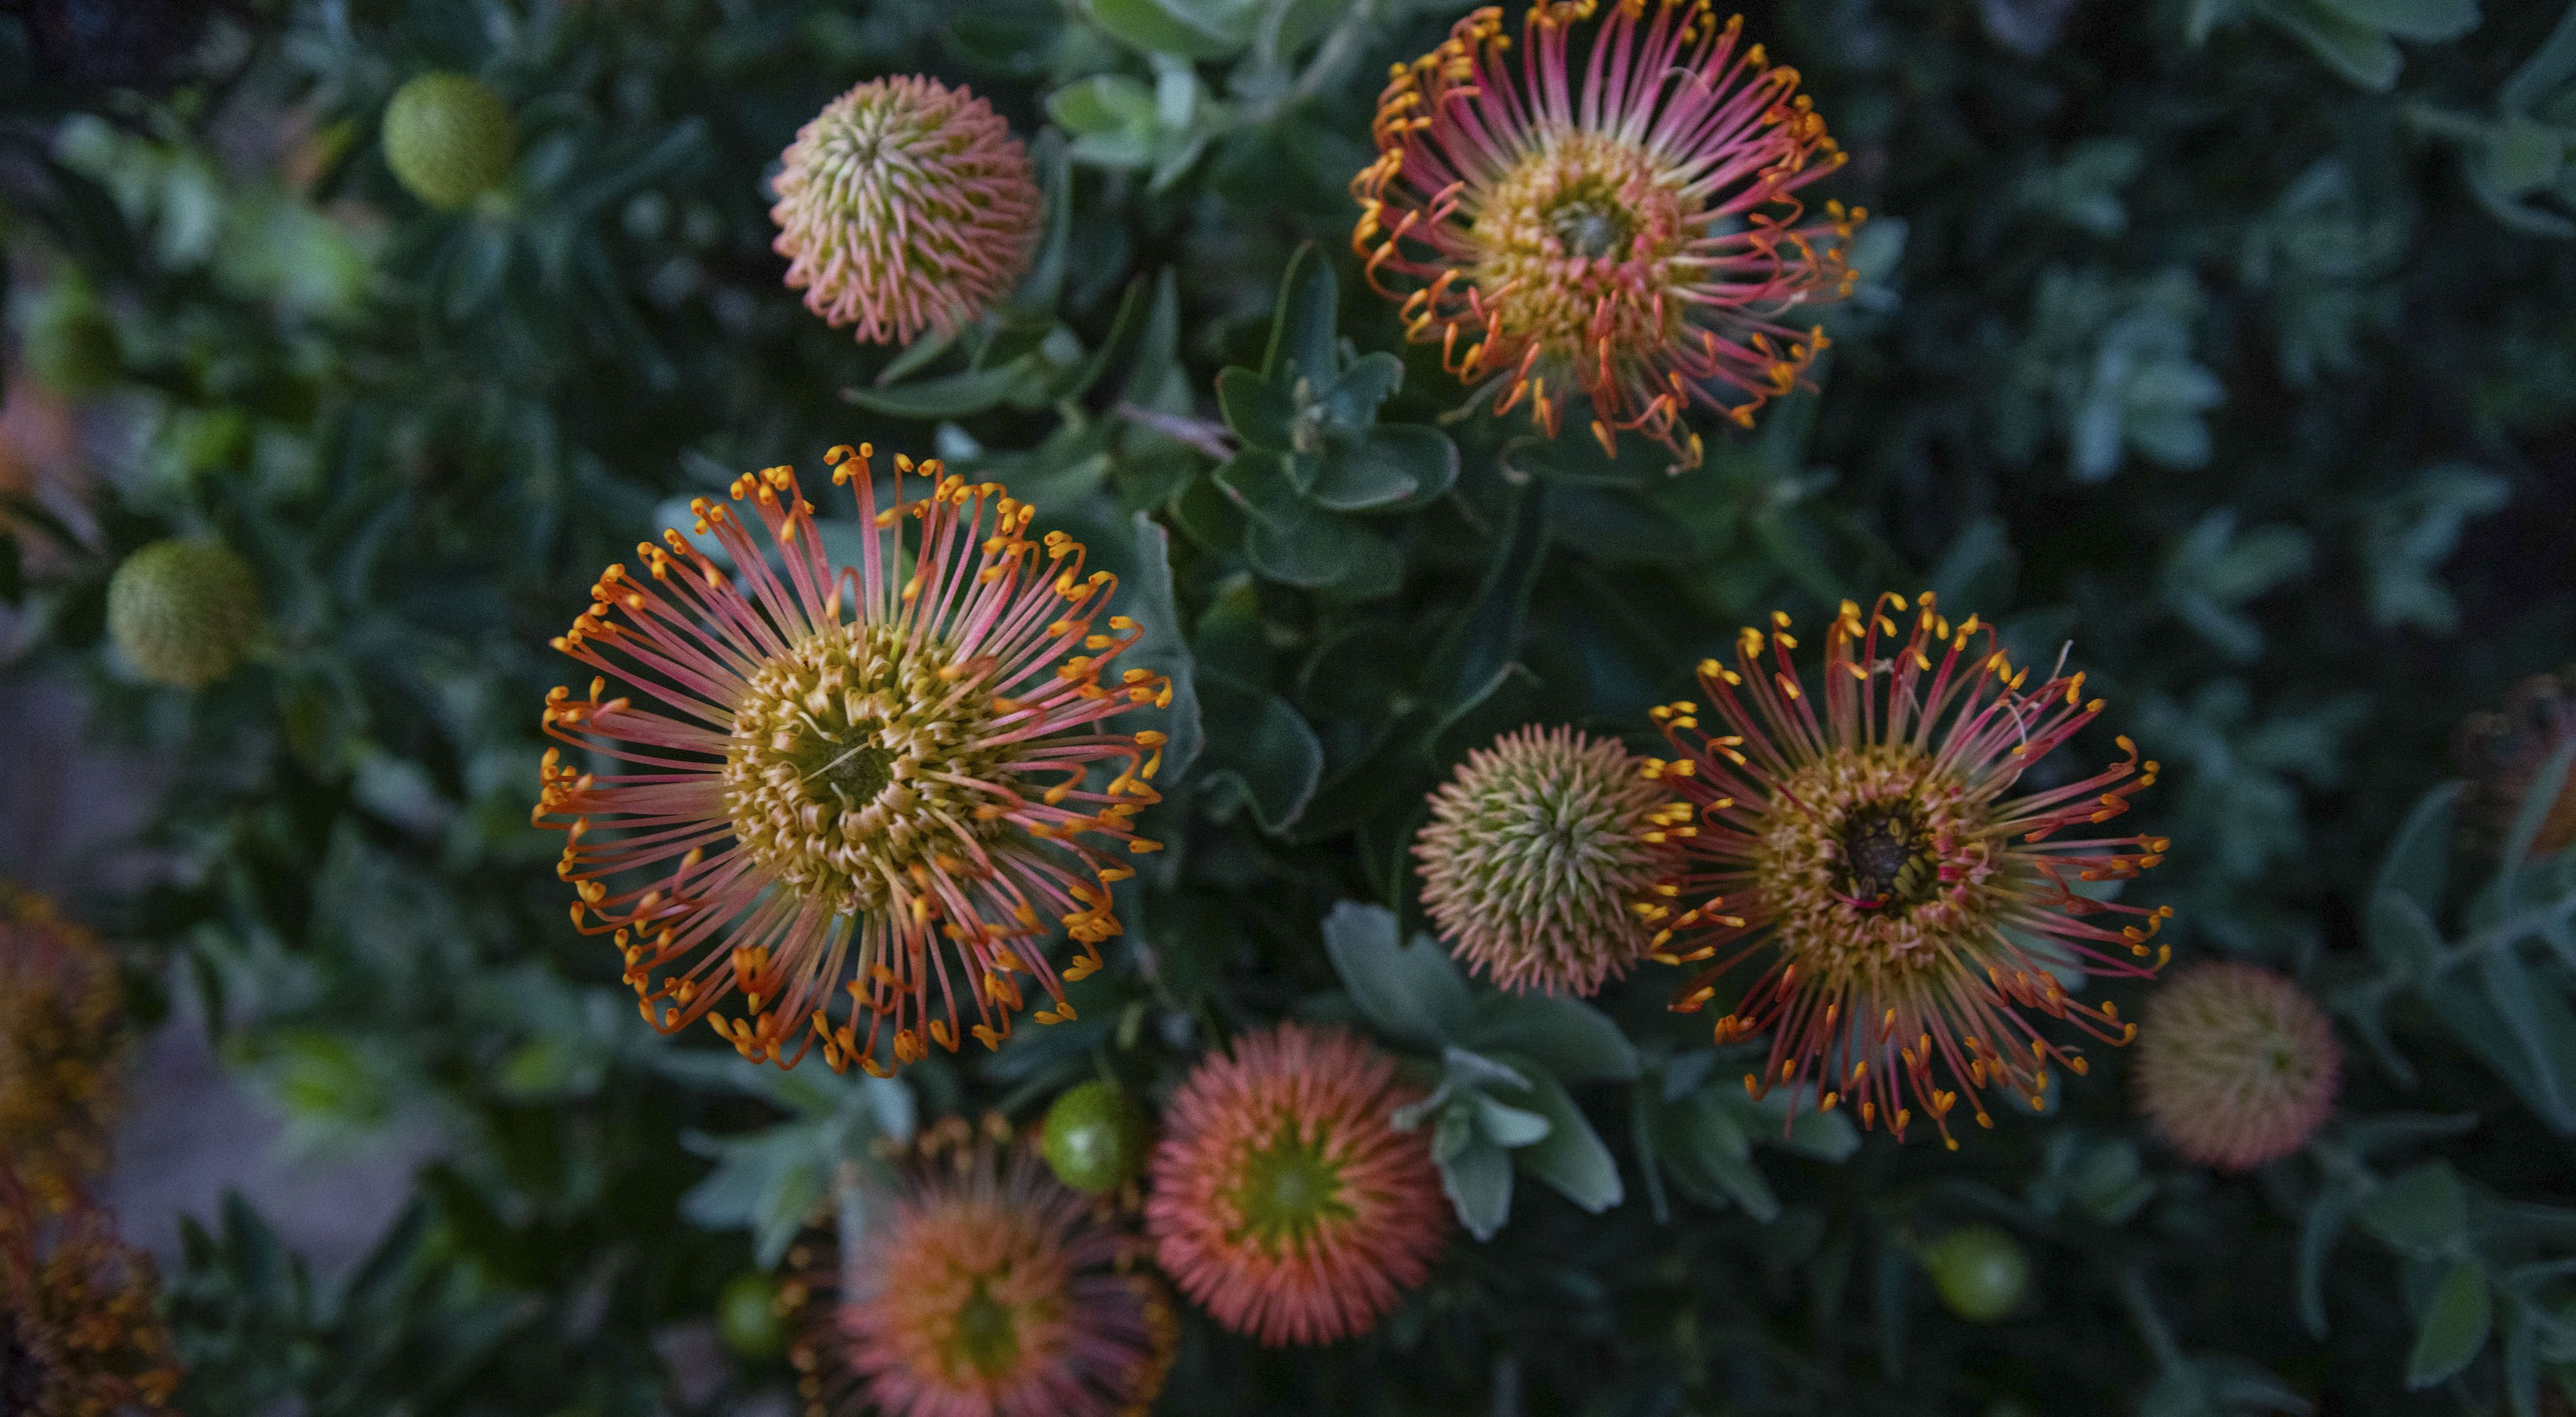 The pincushion protea is endemic to the Southwestern Cape fynbos ecosystem.